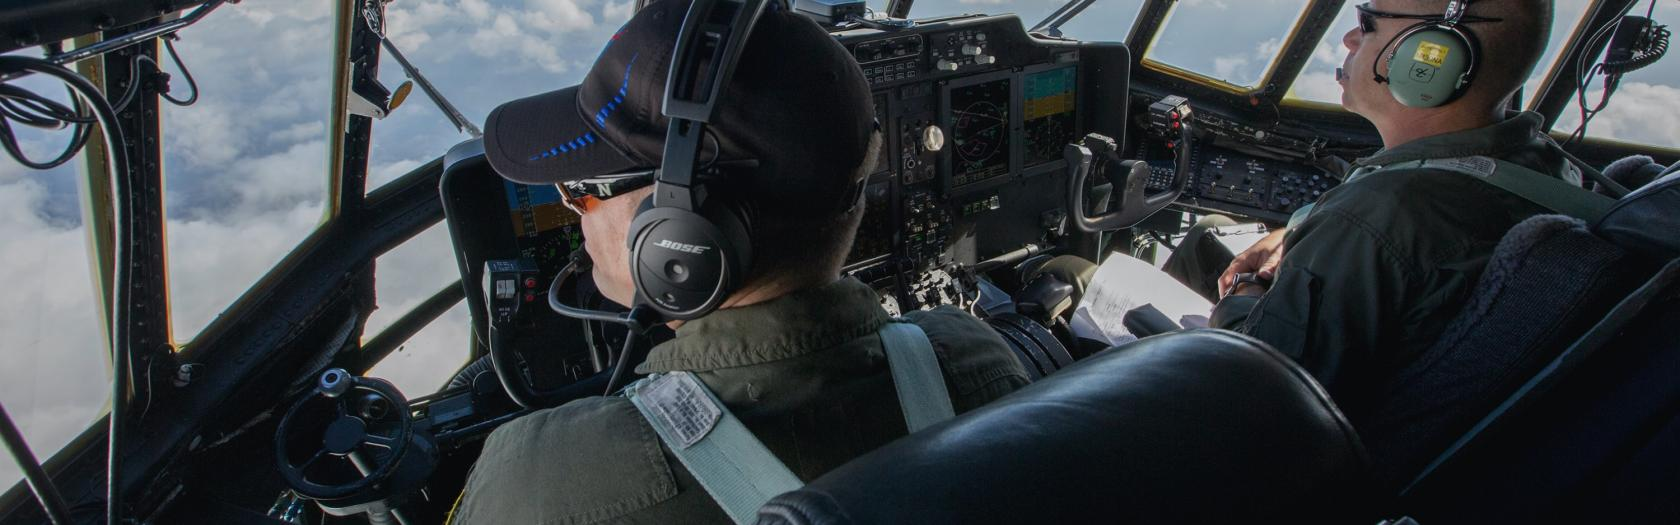 C-130 pilots Jim Lawson, left, and Paul Pinaud during a flight.